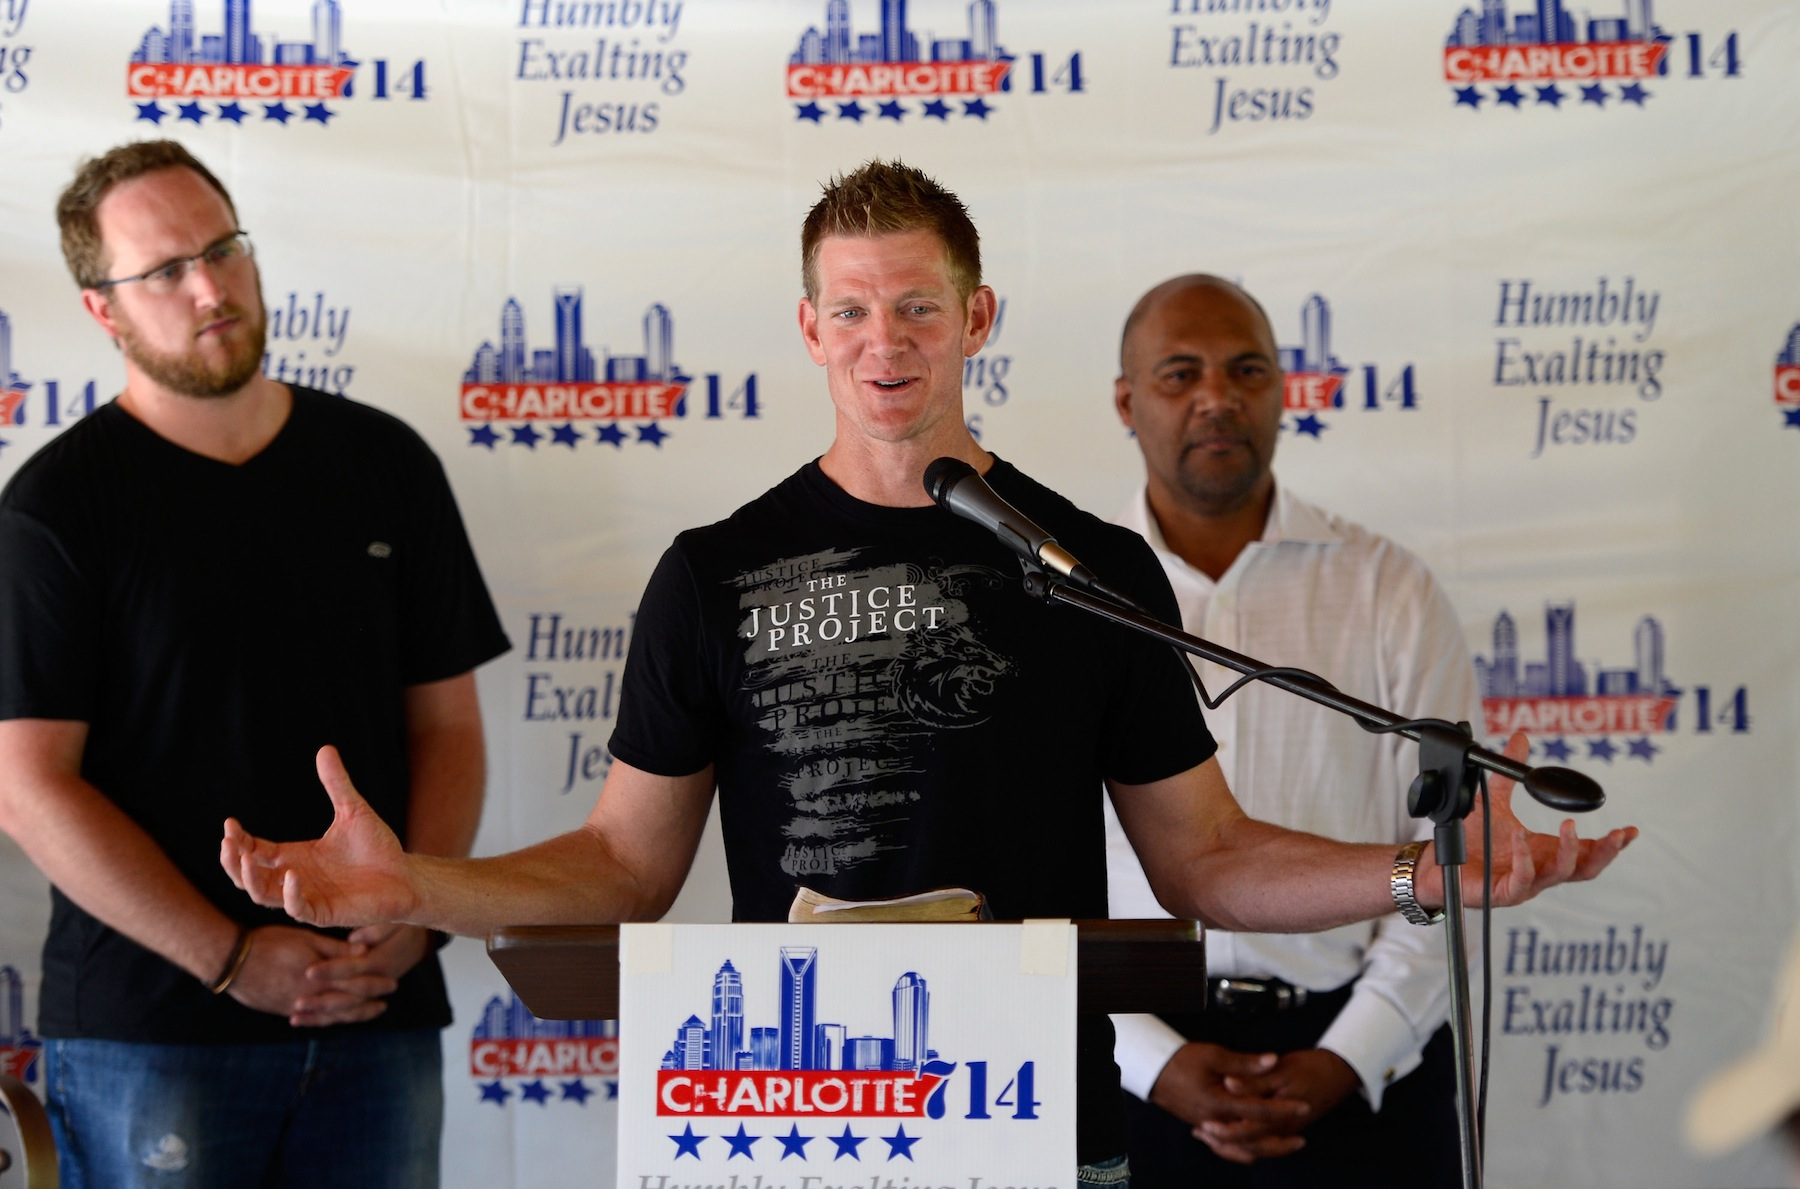 David Benham speaks during a news conference on Sept. 2, 2012 in Charlotte, North Carolina.